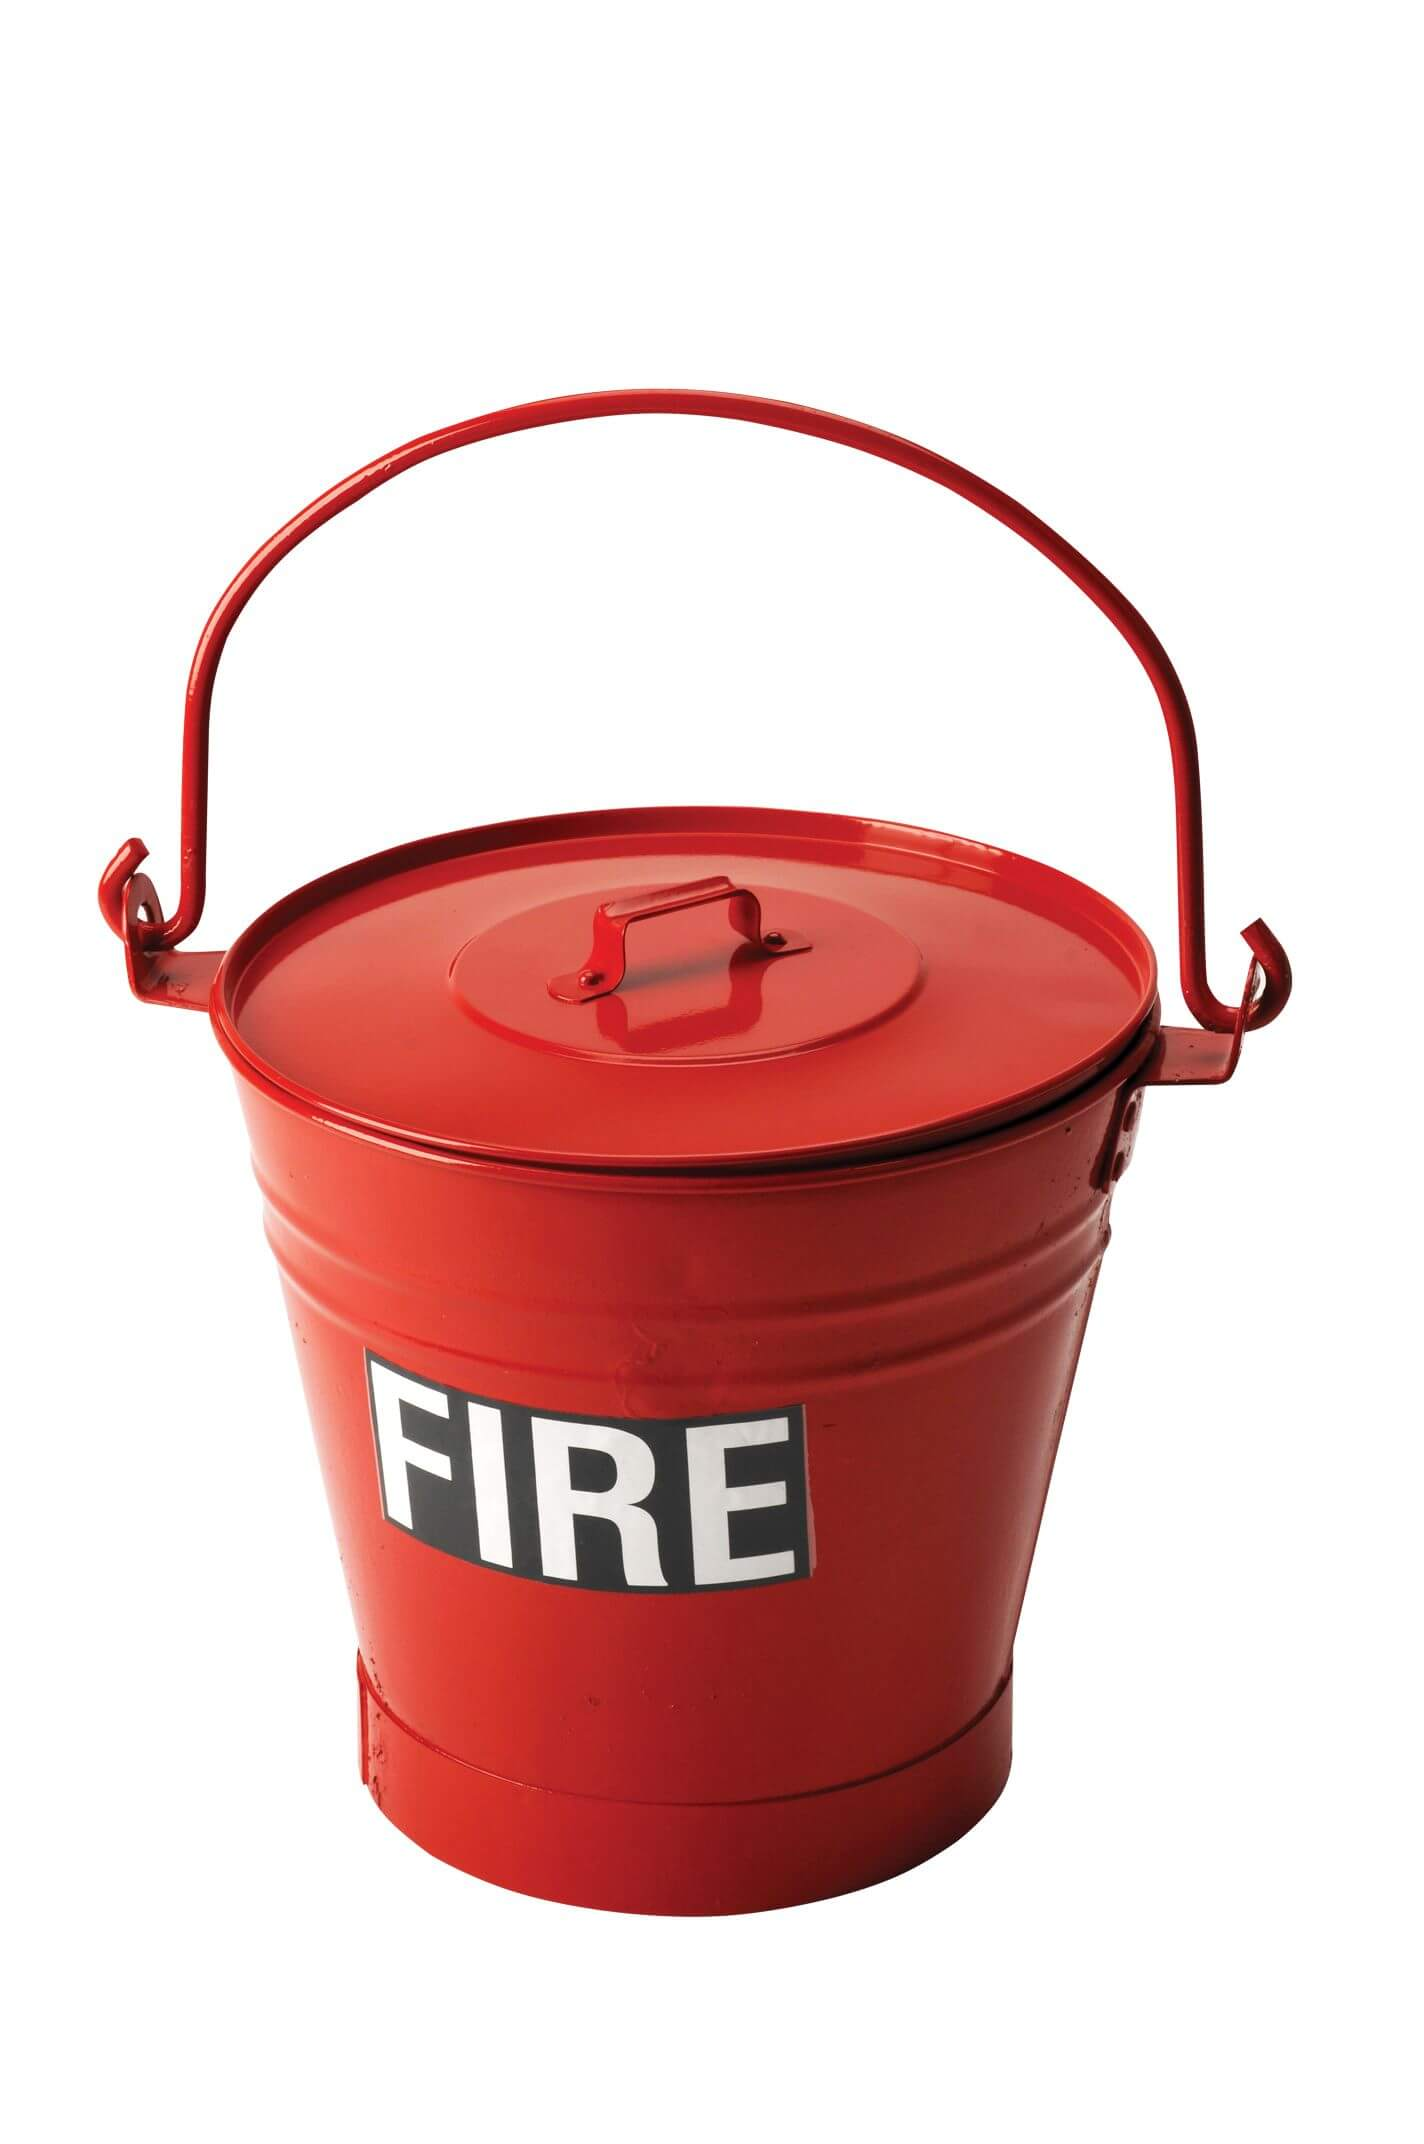 Fire Safety Accessories | Fire Safety | Bull Products